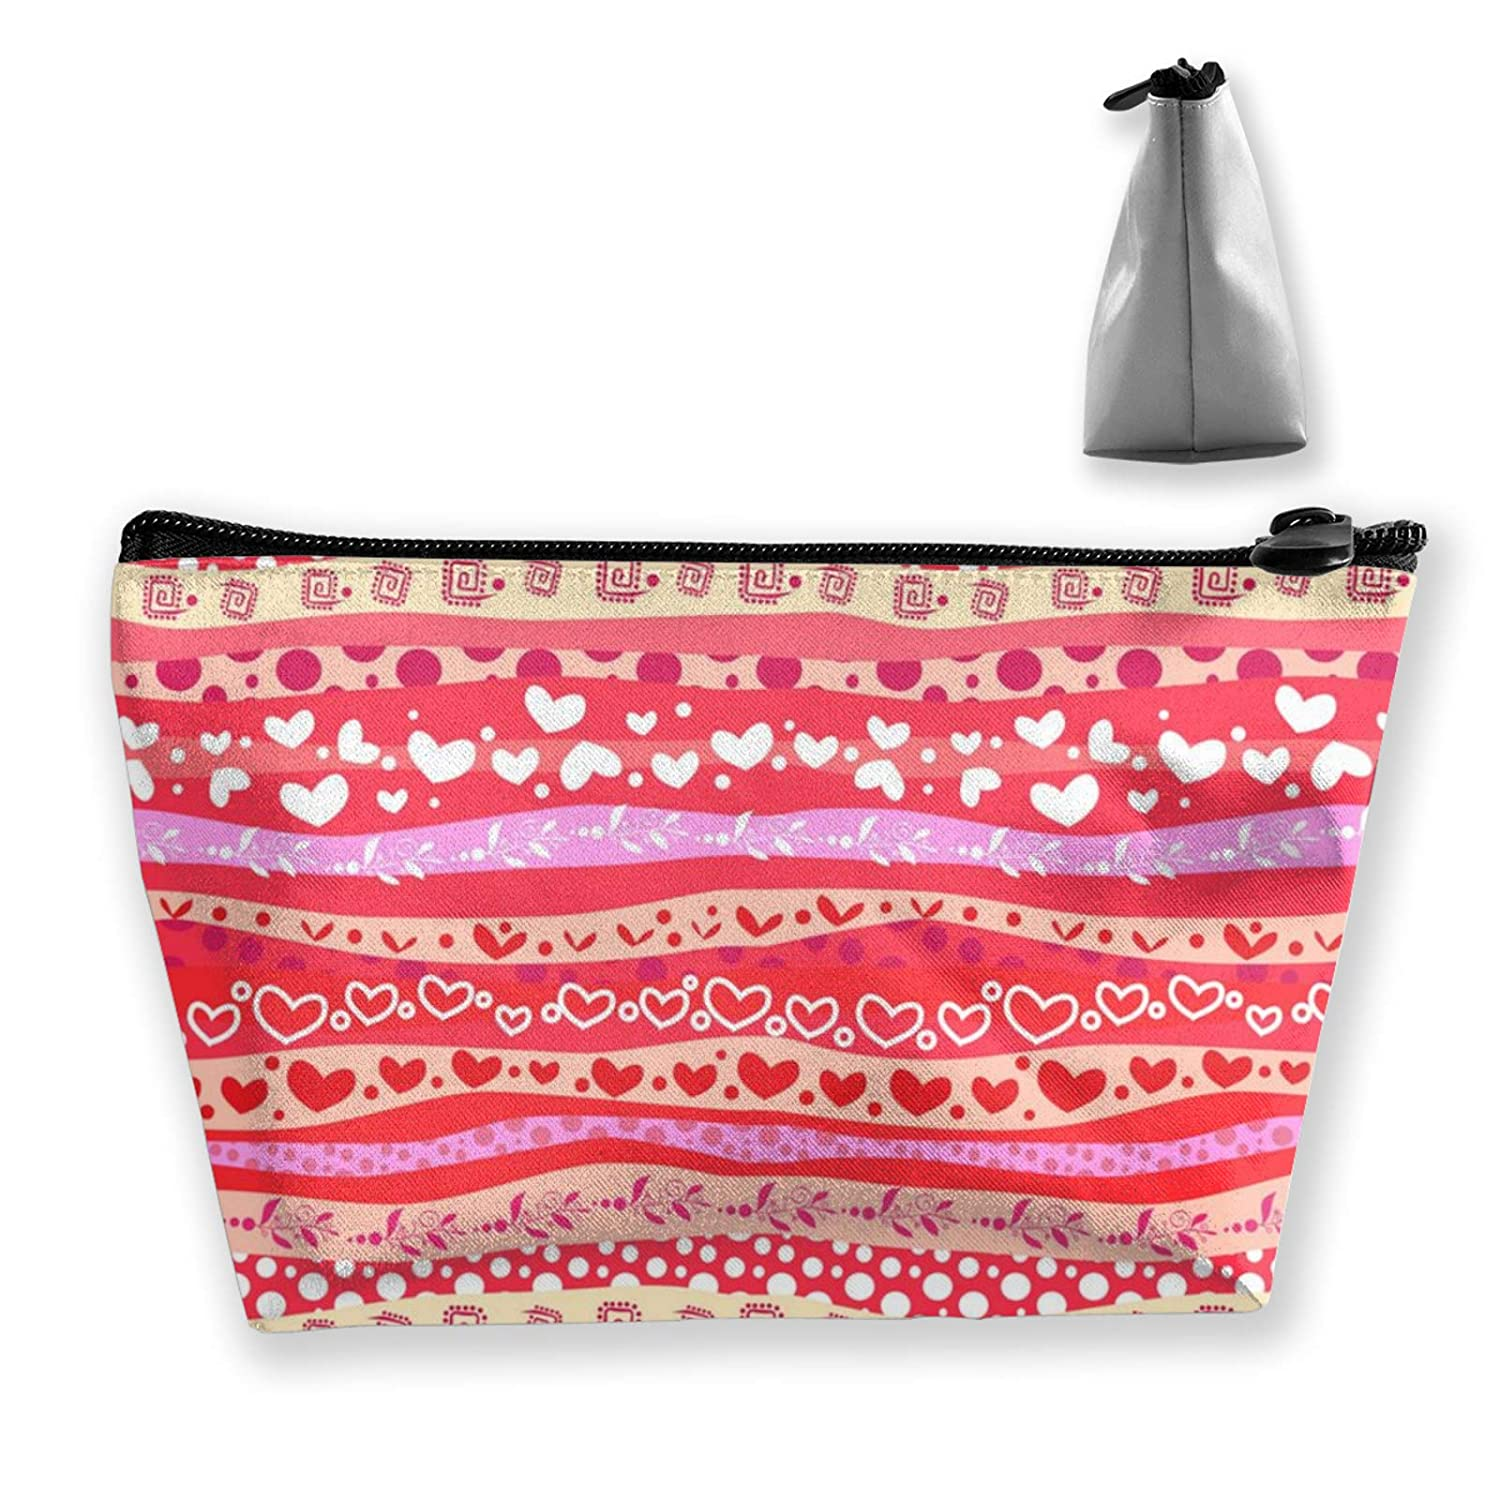 Lazy Makeup Case Love Heart Patterns Clutch Bag Cosmetic Train Case Organizer Large Capacity Carry On Bag Luggage Pouch